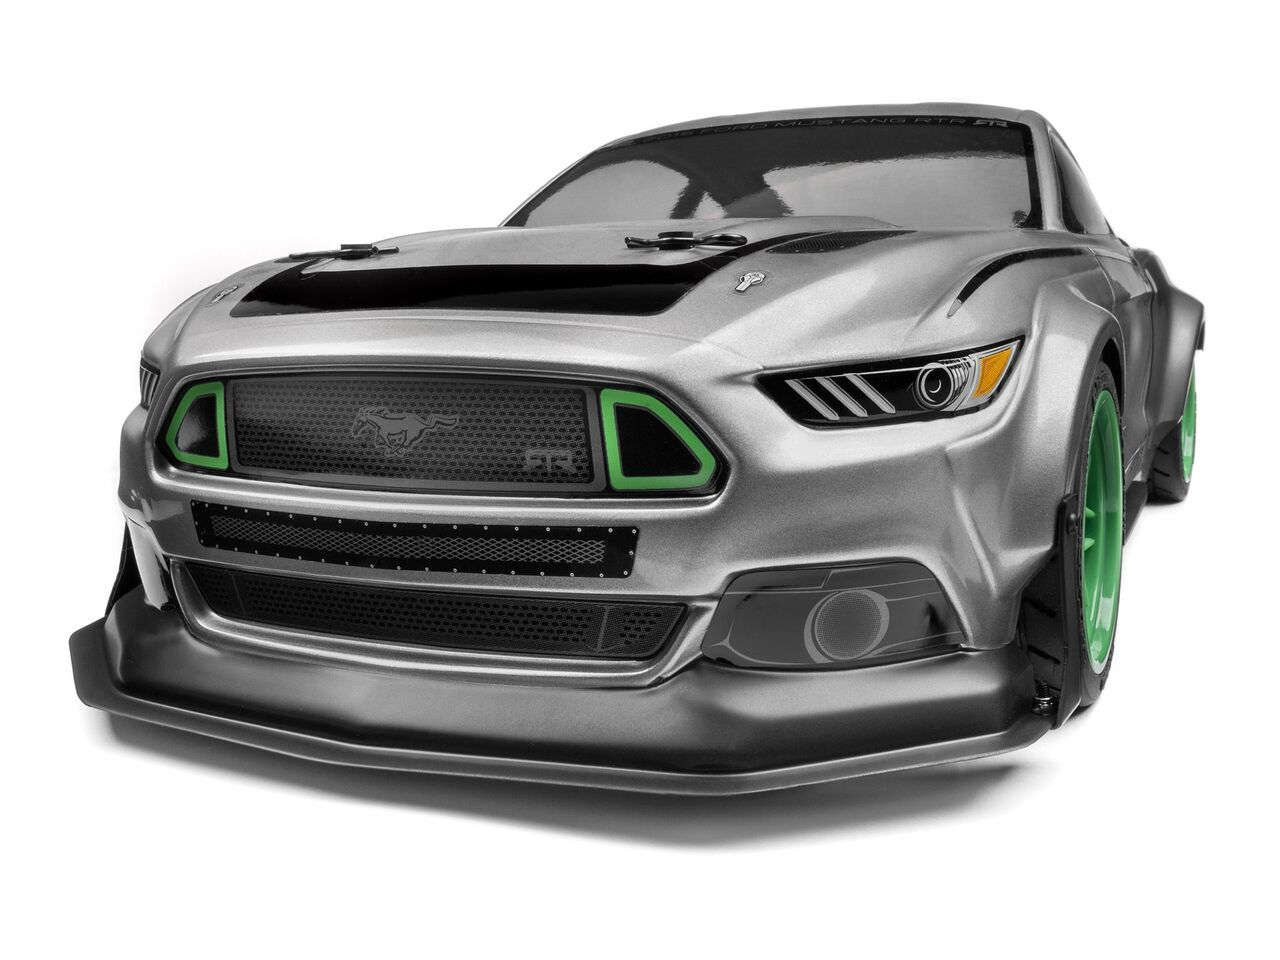 Туринг 1/10 - RS4 SPORT 3 2015 FORD MUSTANG RTR SPEC 5 радиоуправляемая машина для дрифта hpi racing rs4 sport 3 drift subaru brz 4wd rtr масштаб 1 10 2 4g